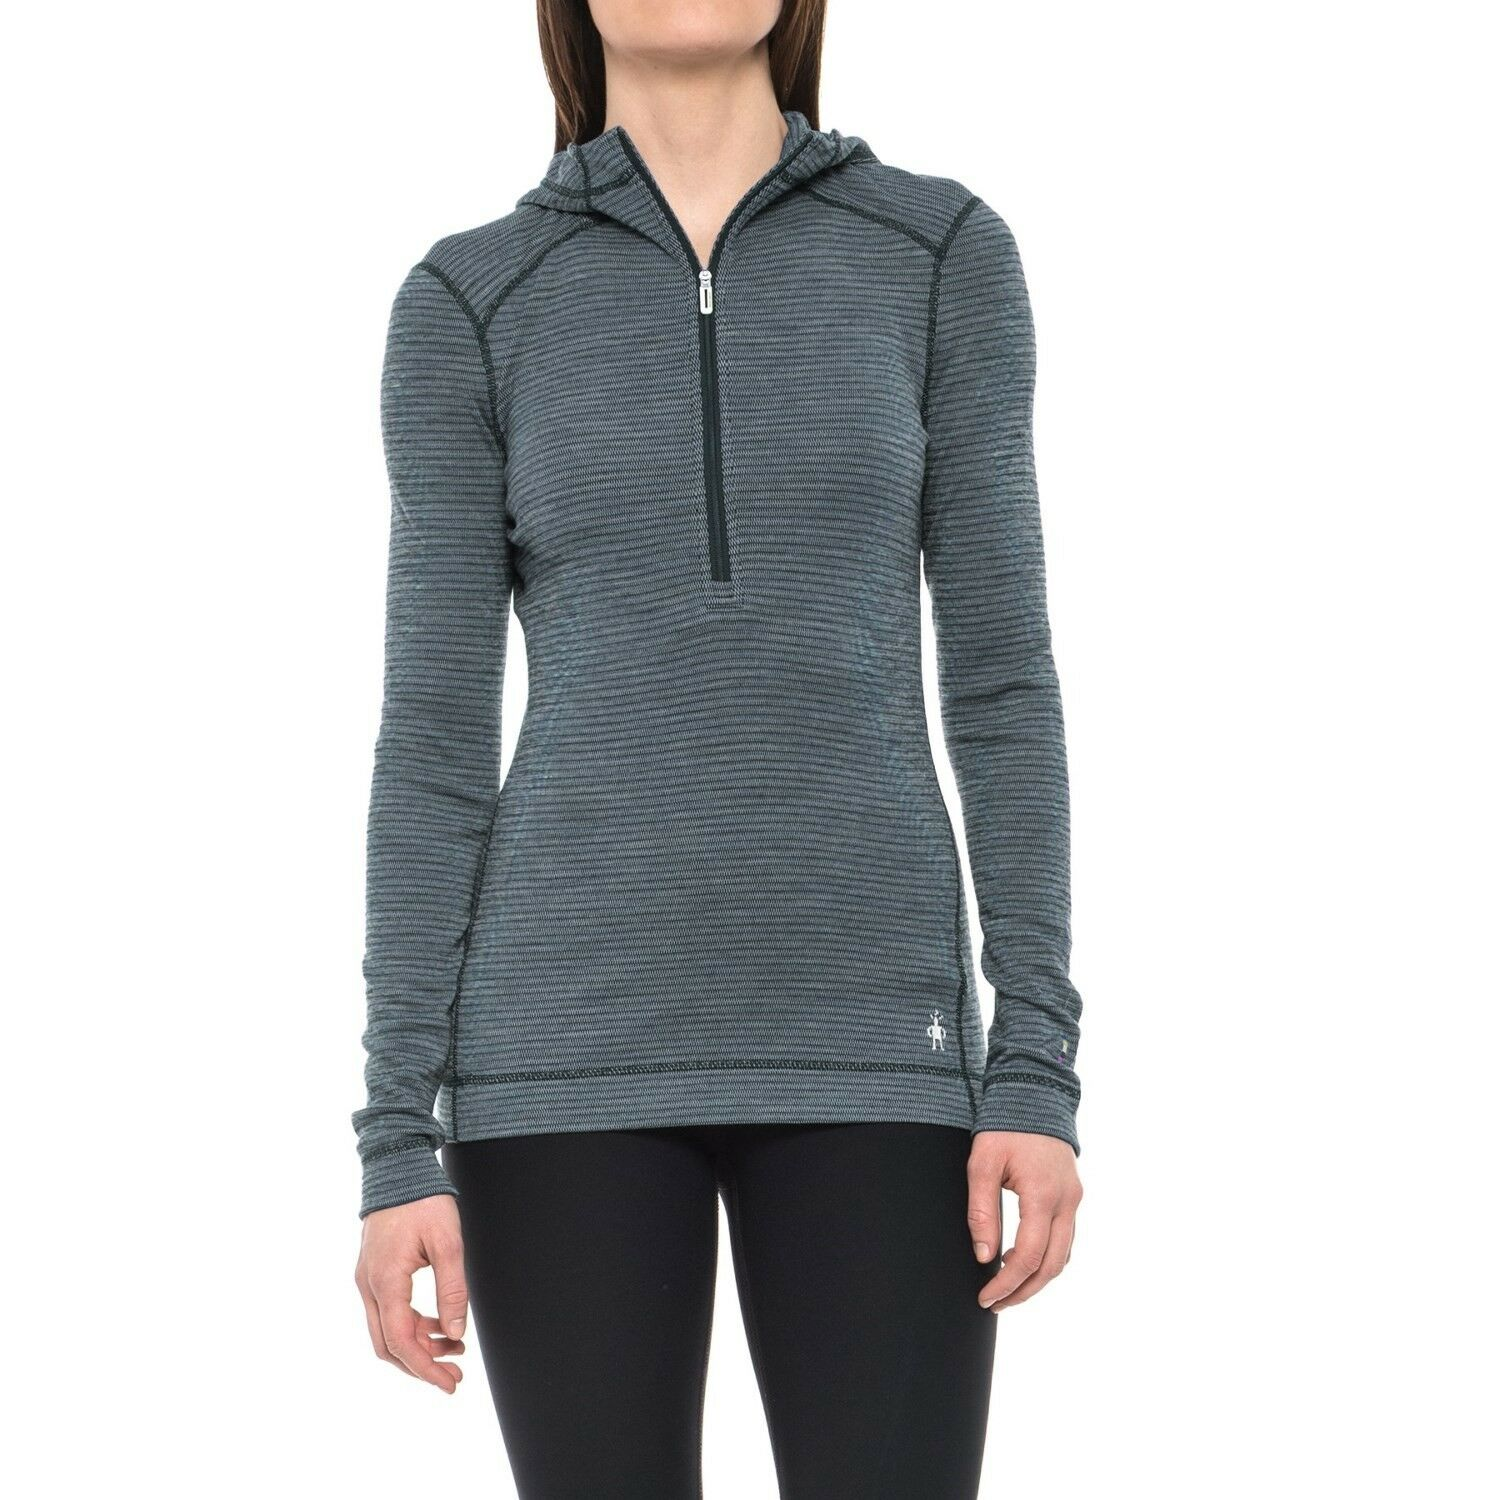 Smartwool NTS  Mid 250 Deep Navy Merino Hooded Top - L - NWT  a lot of concessions